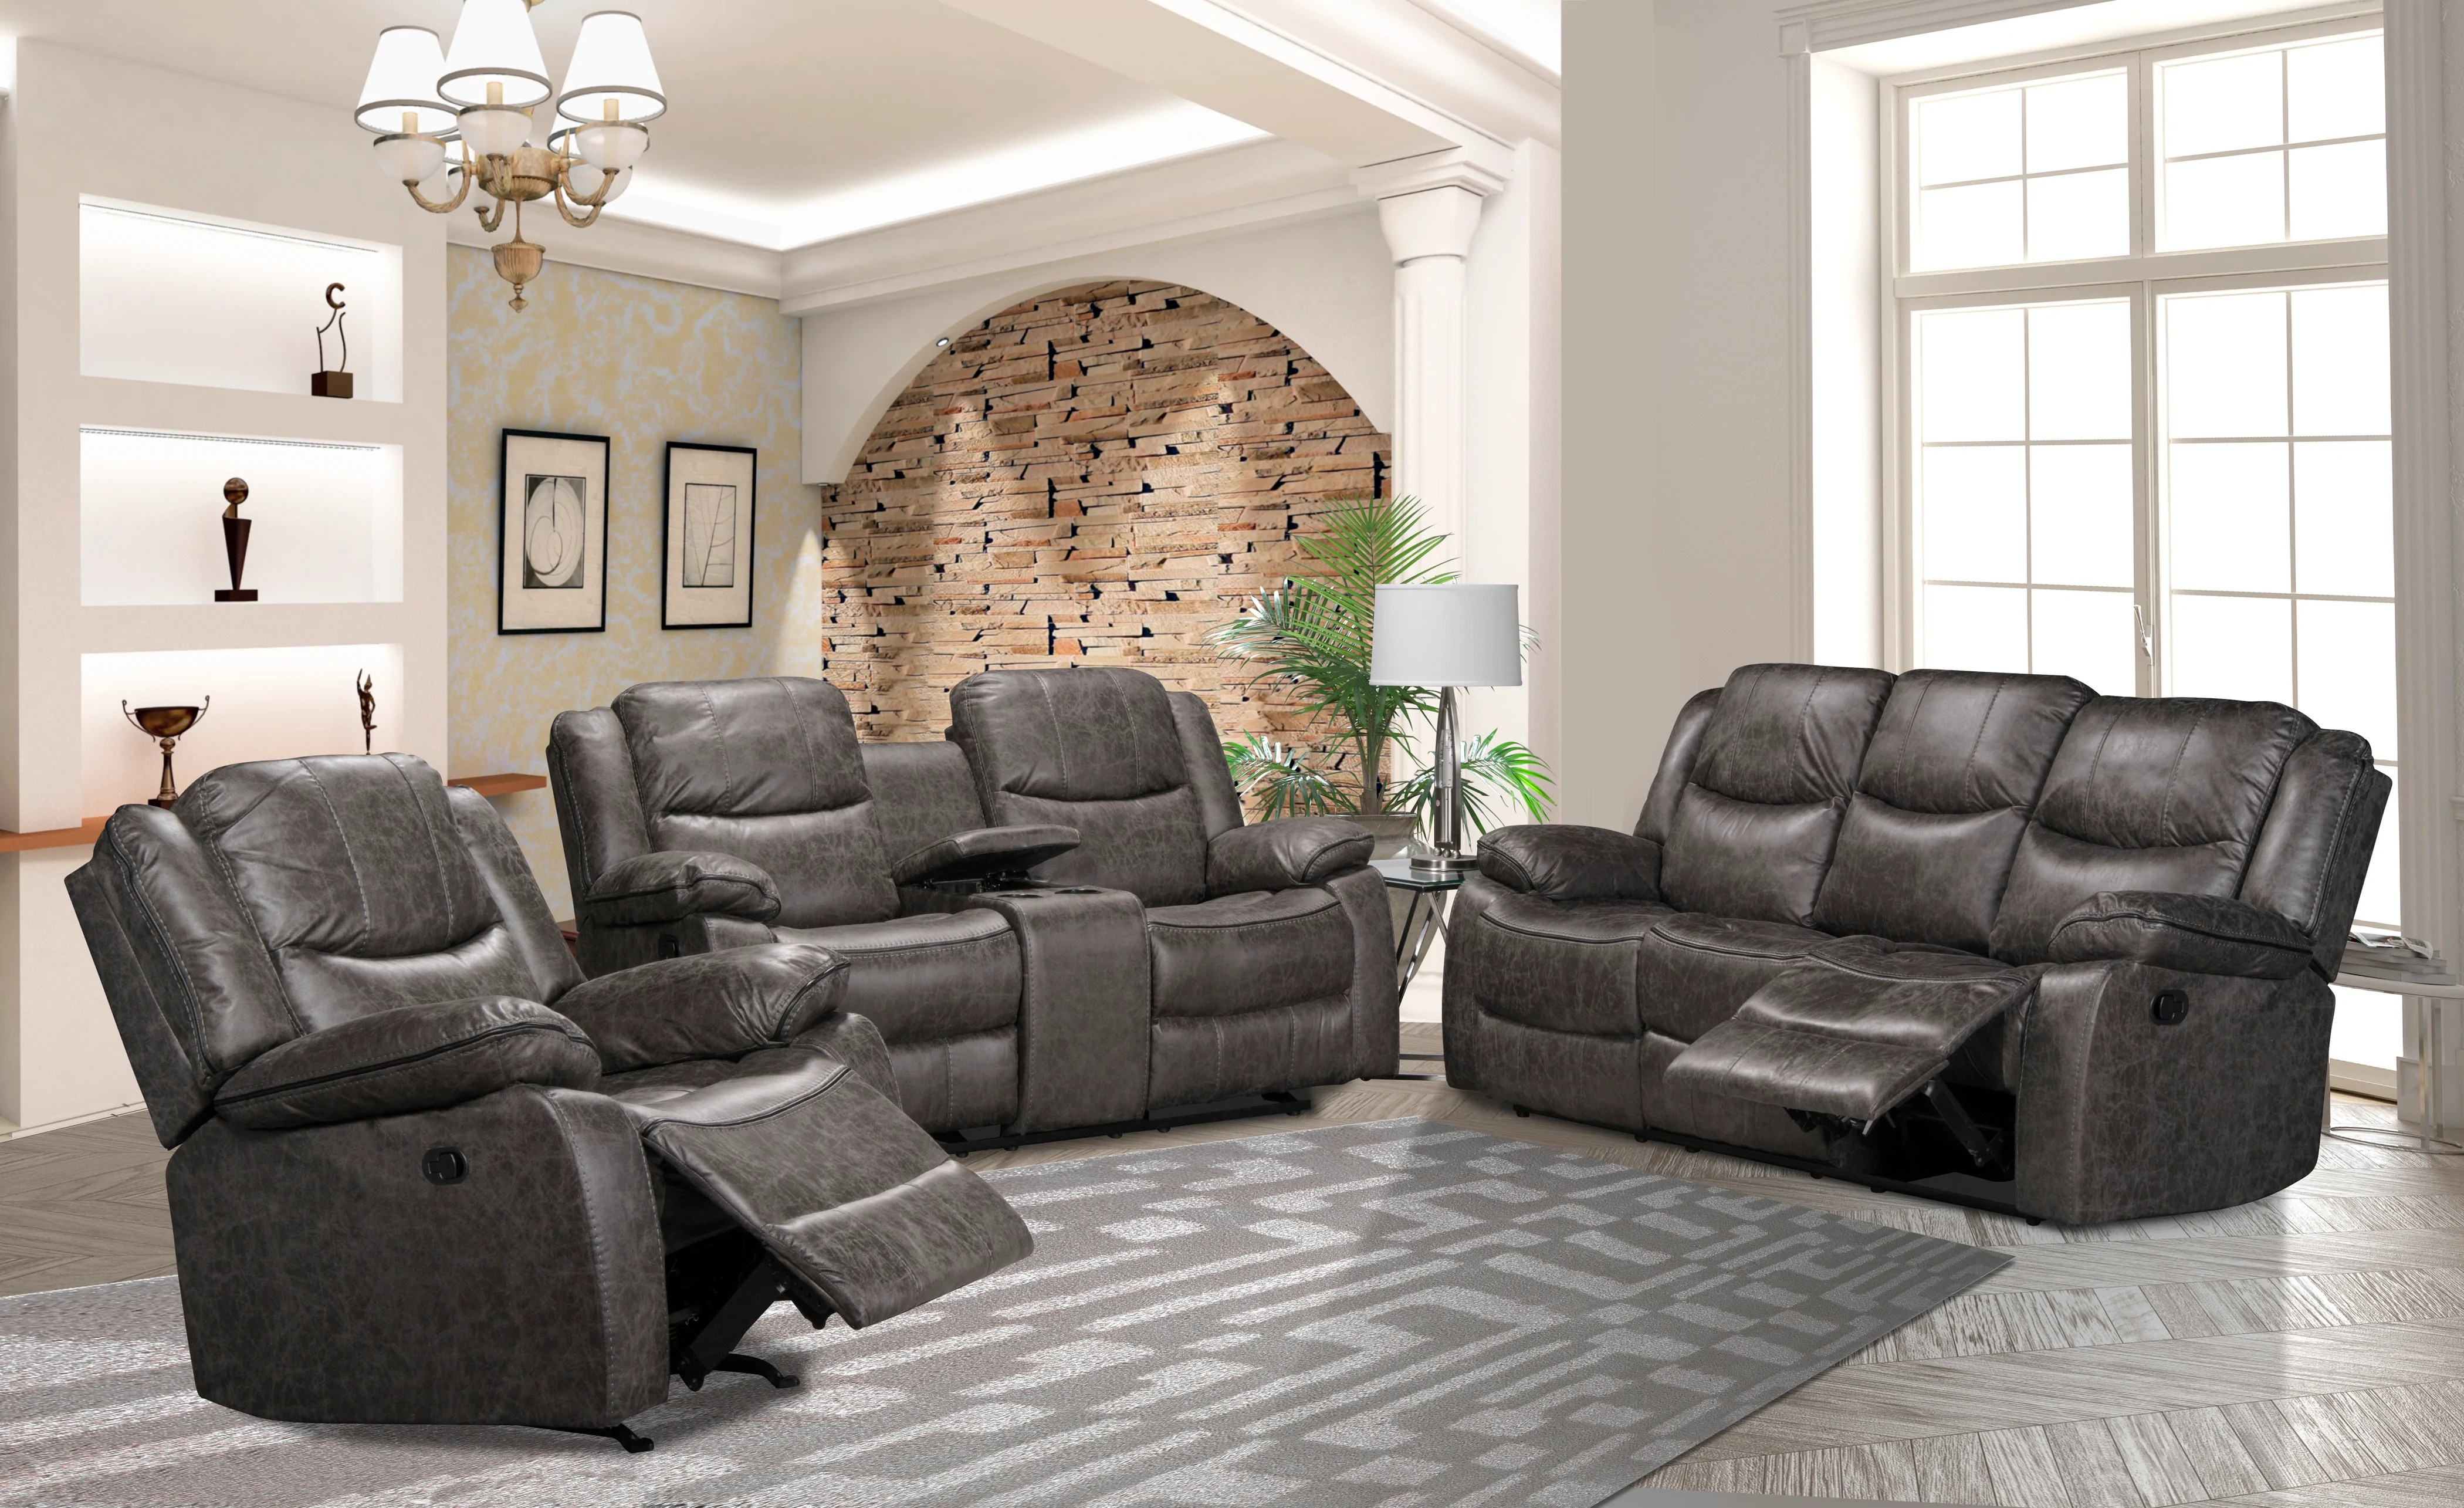 good quality affordable sofa sectional linen style fabric charcoal graphite in kitchener waterloo and cambridge area payless furniture